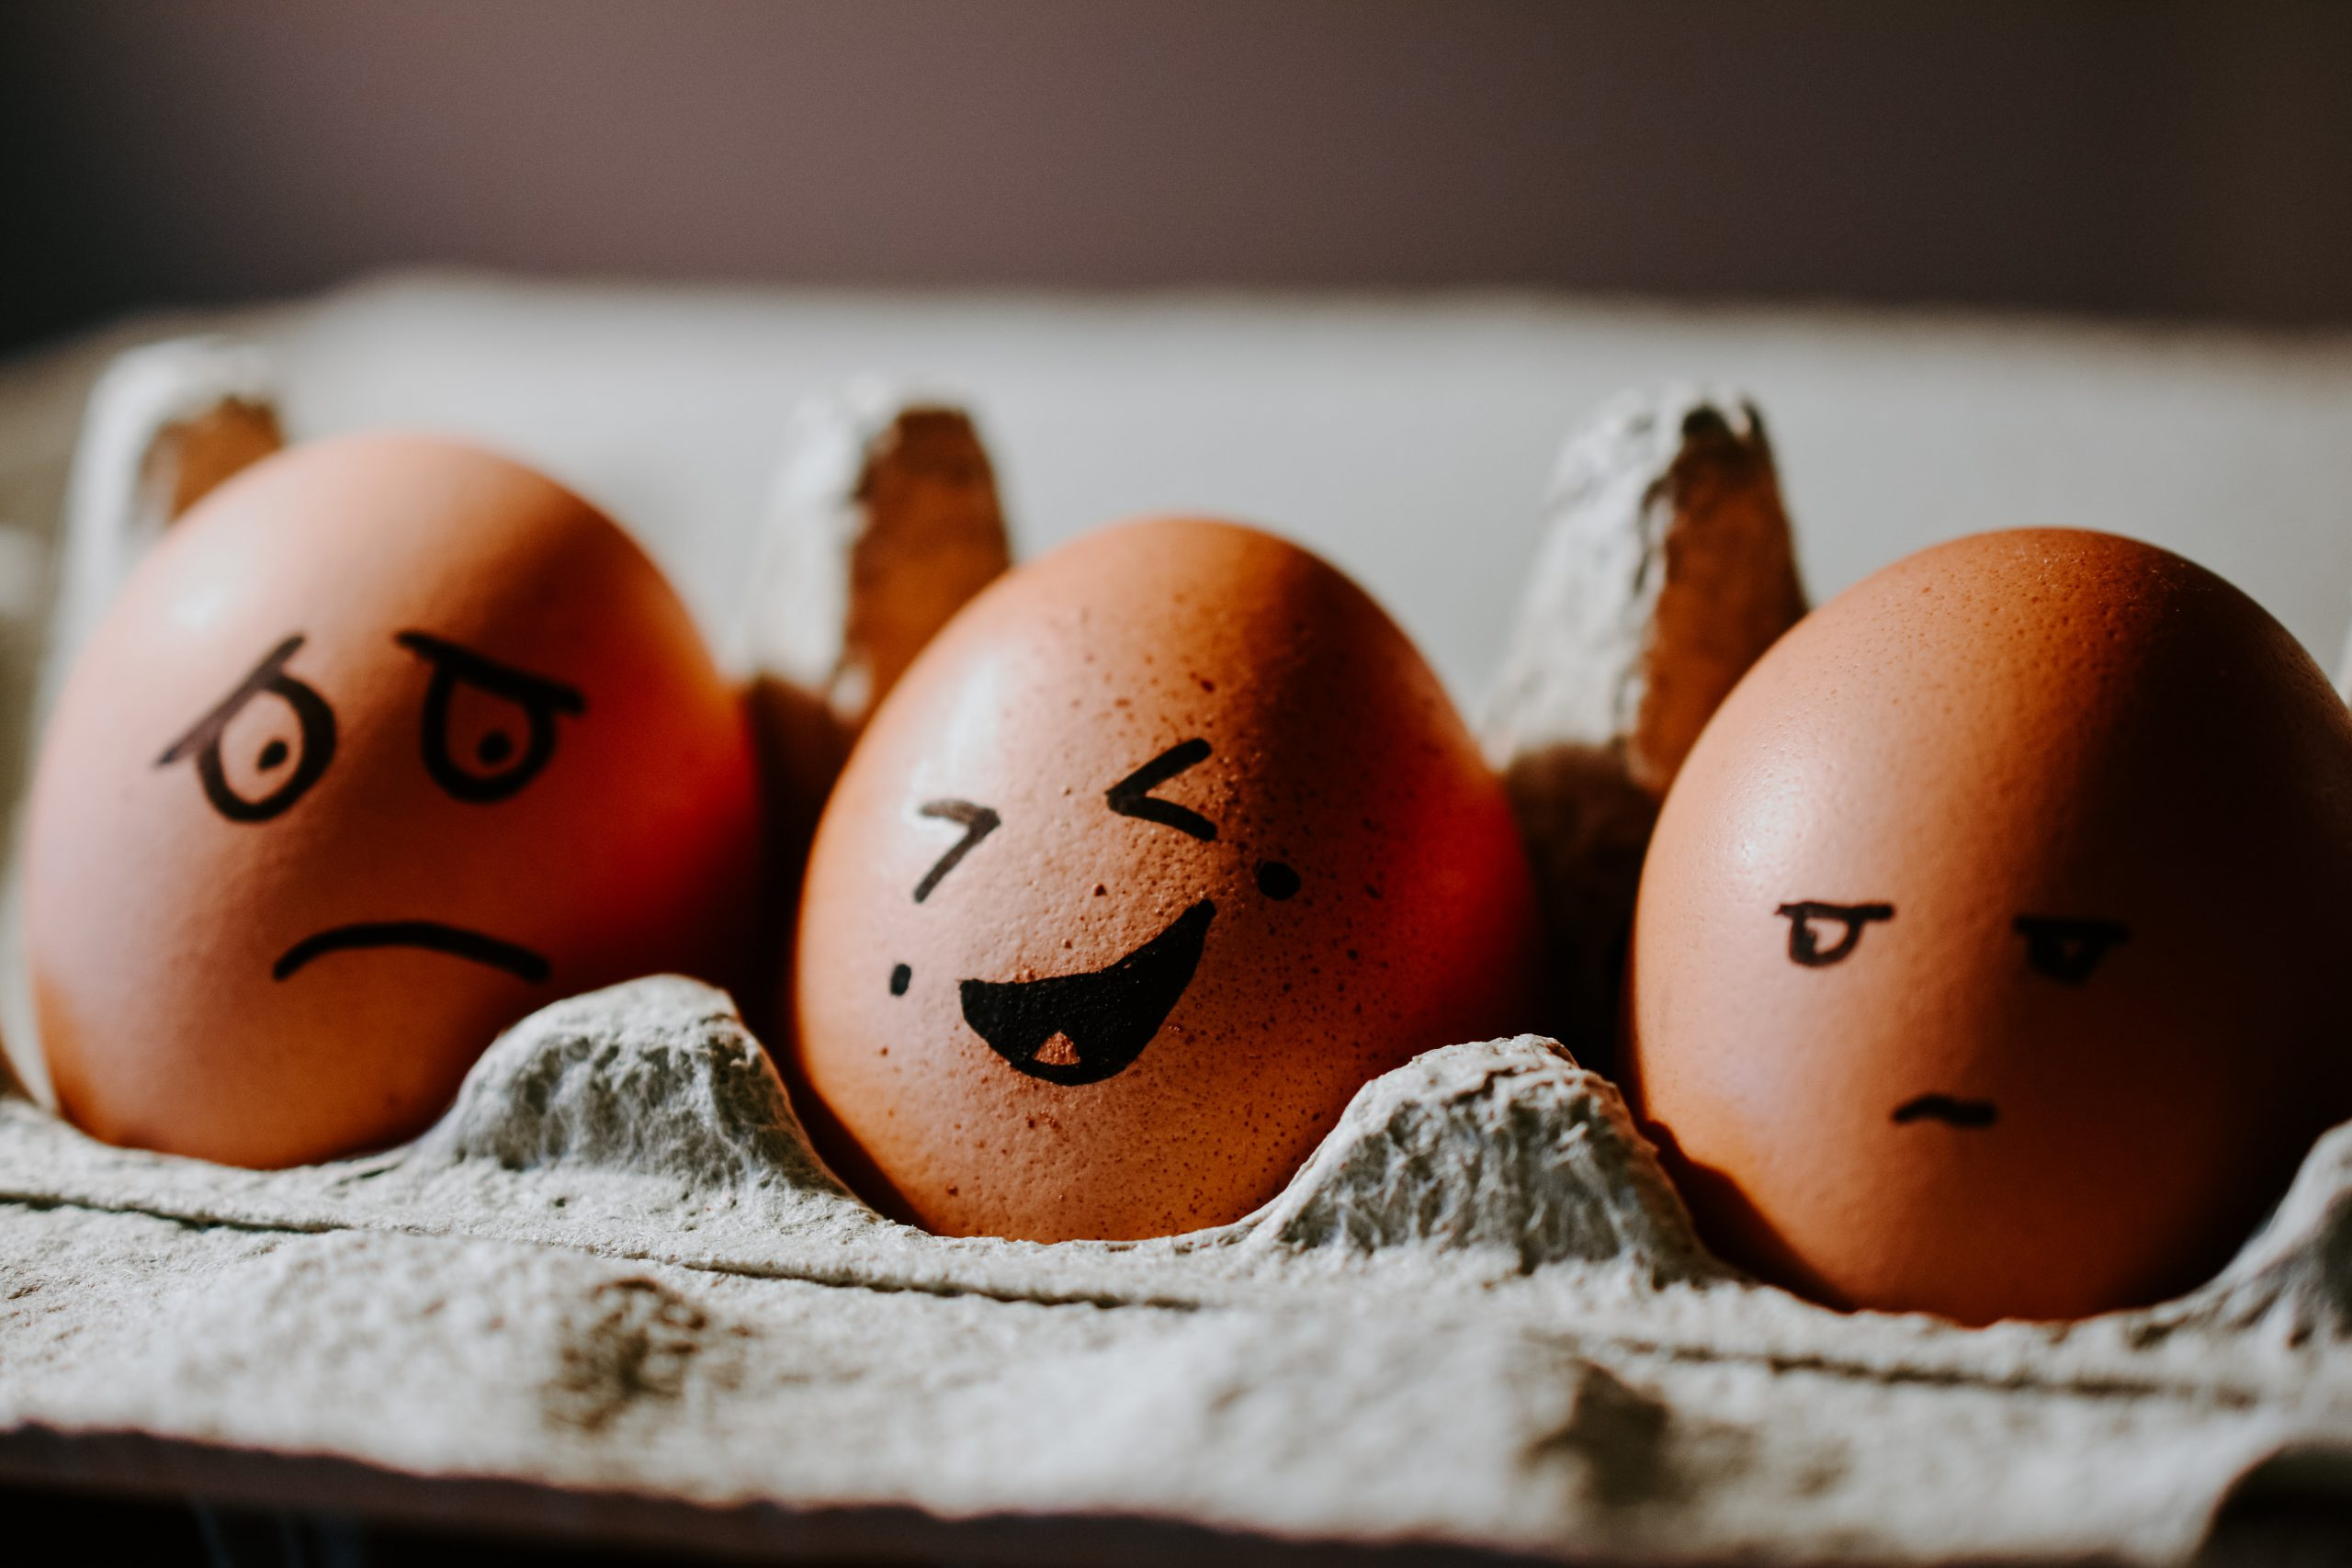 Egg with illustrated laugh